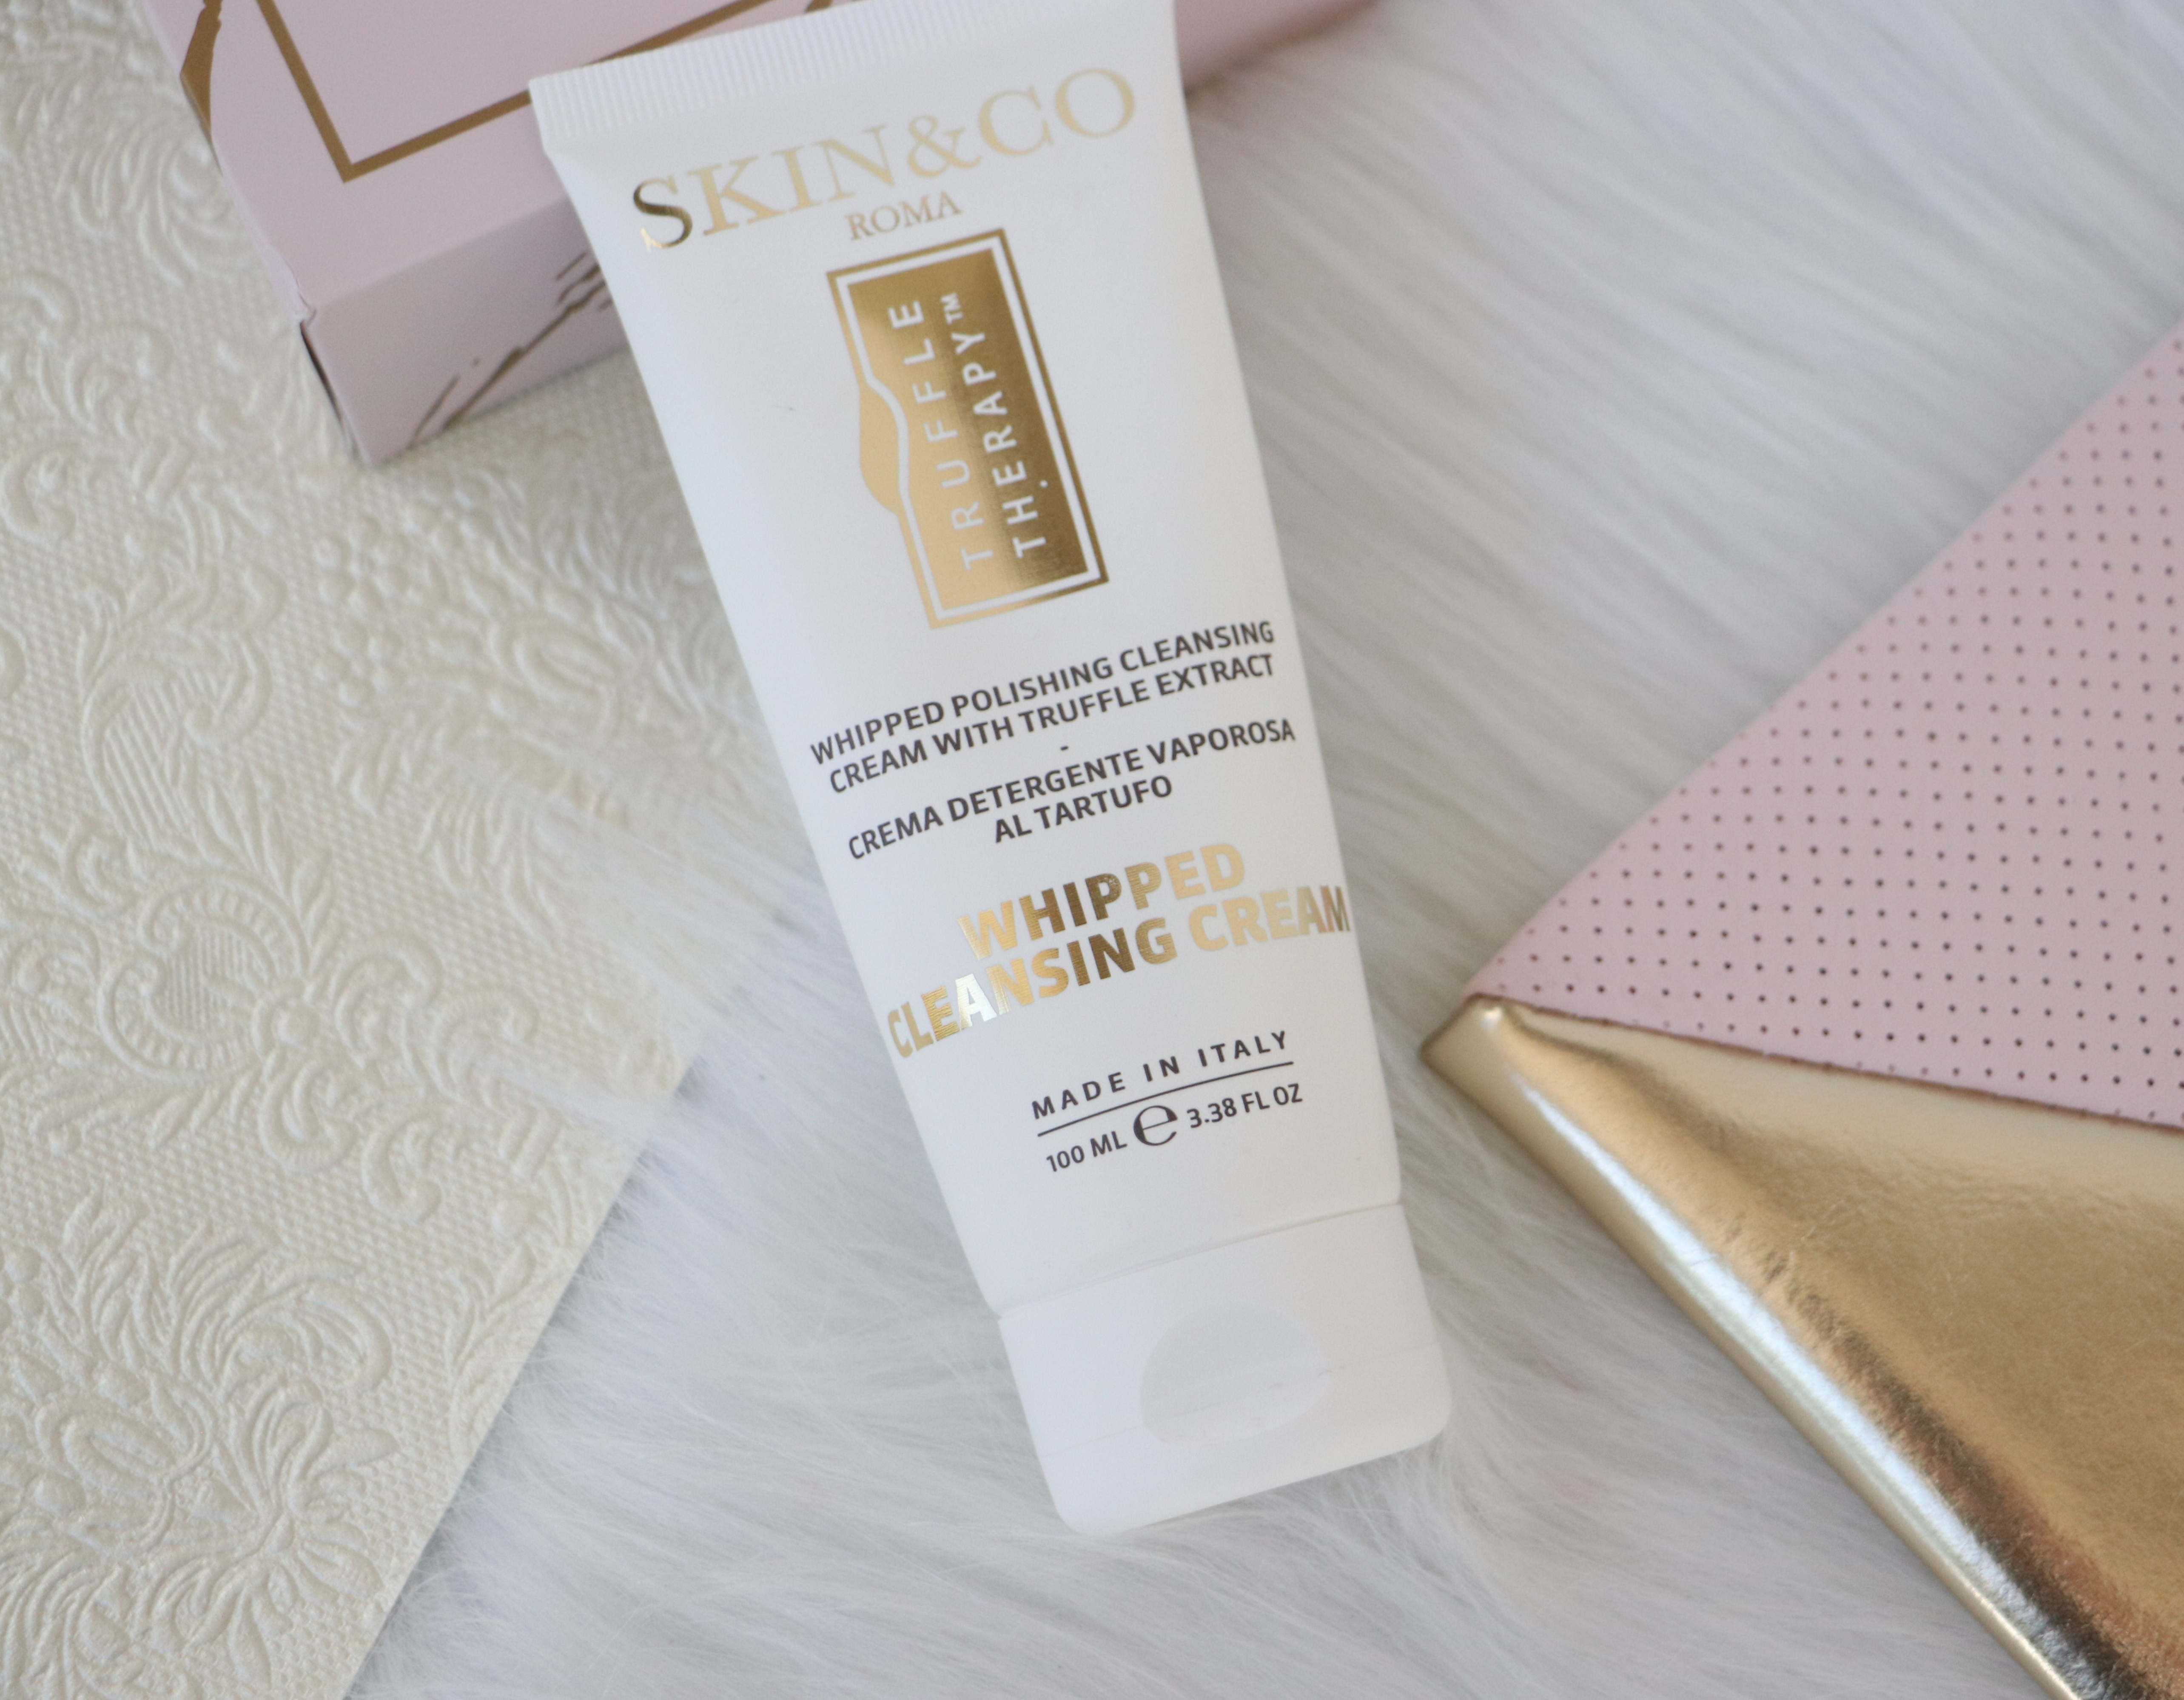 SKIN AND CO – TRUFFLE THERAPY WHIPPED CLEANSING CREAM